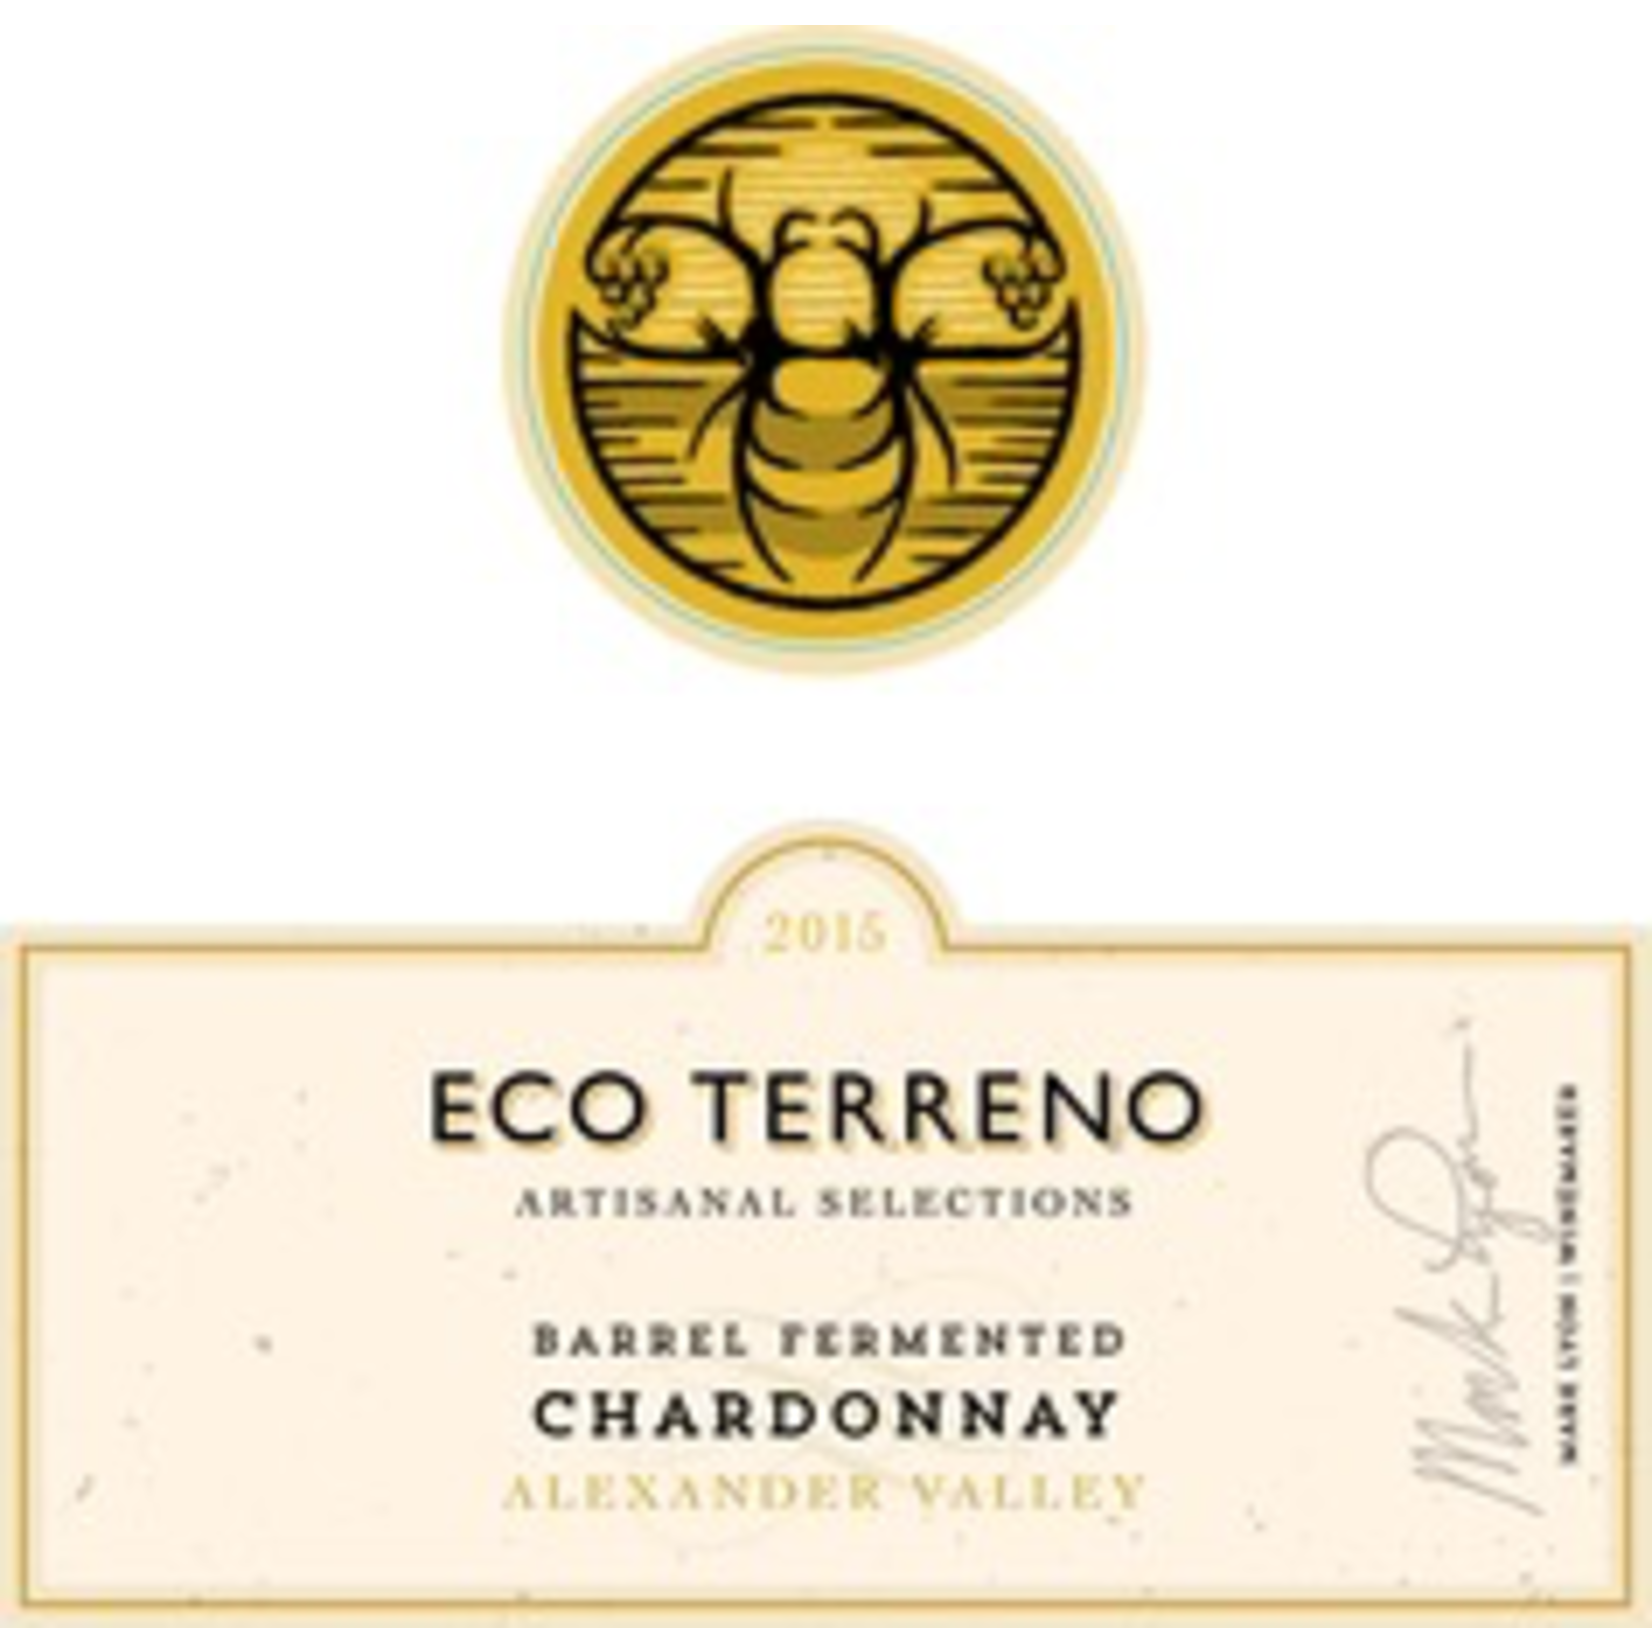 Wine Eco Terreno Chardonnay Alexander Valley 2015